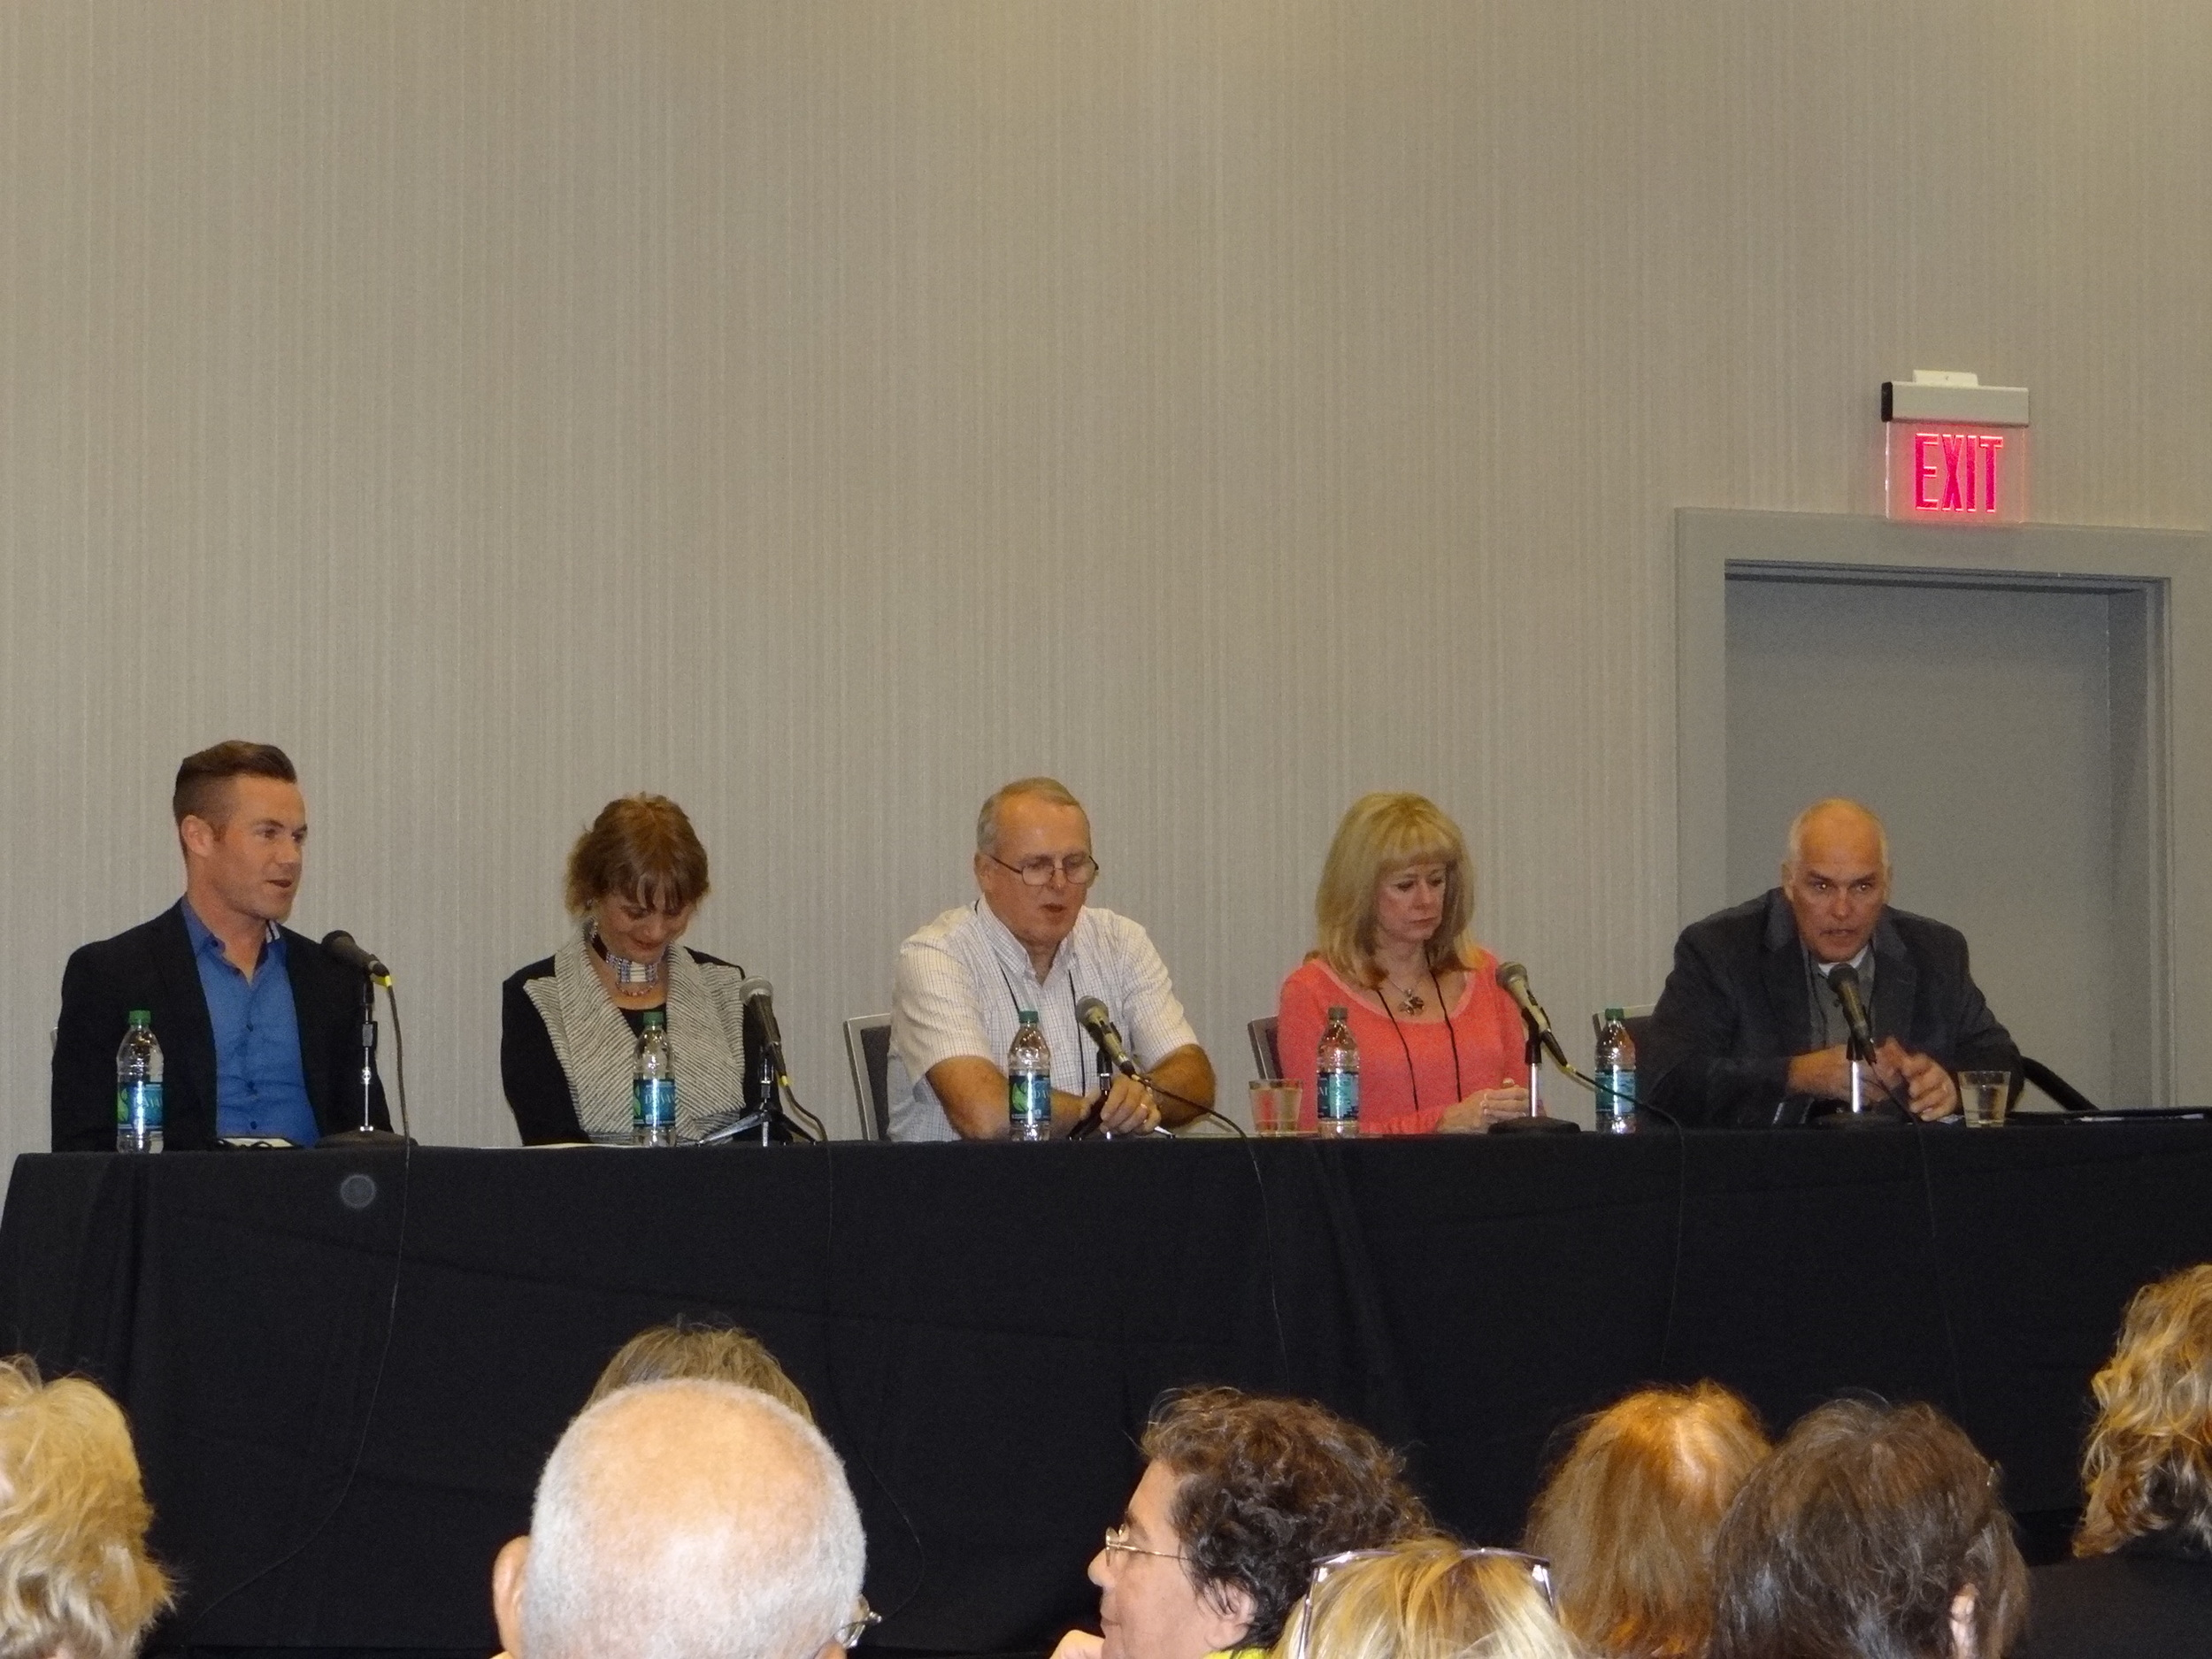 l-r: Ryan Quinn, Anne Hillerman, Alex Letrau, Kathy Reichs, and Neal Griffin